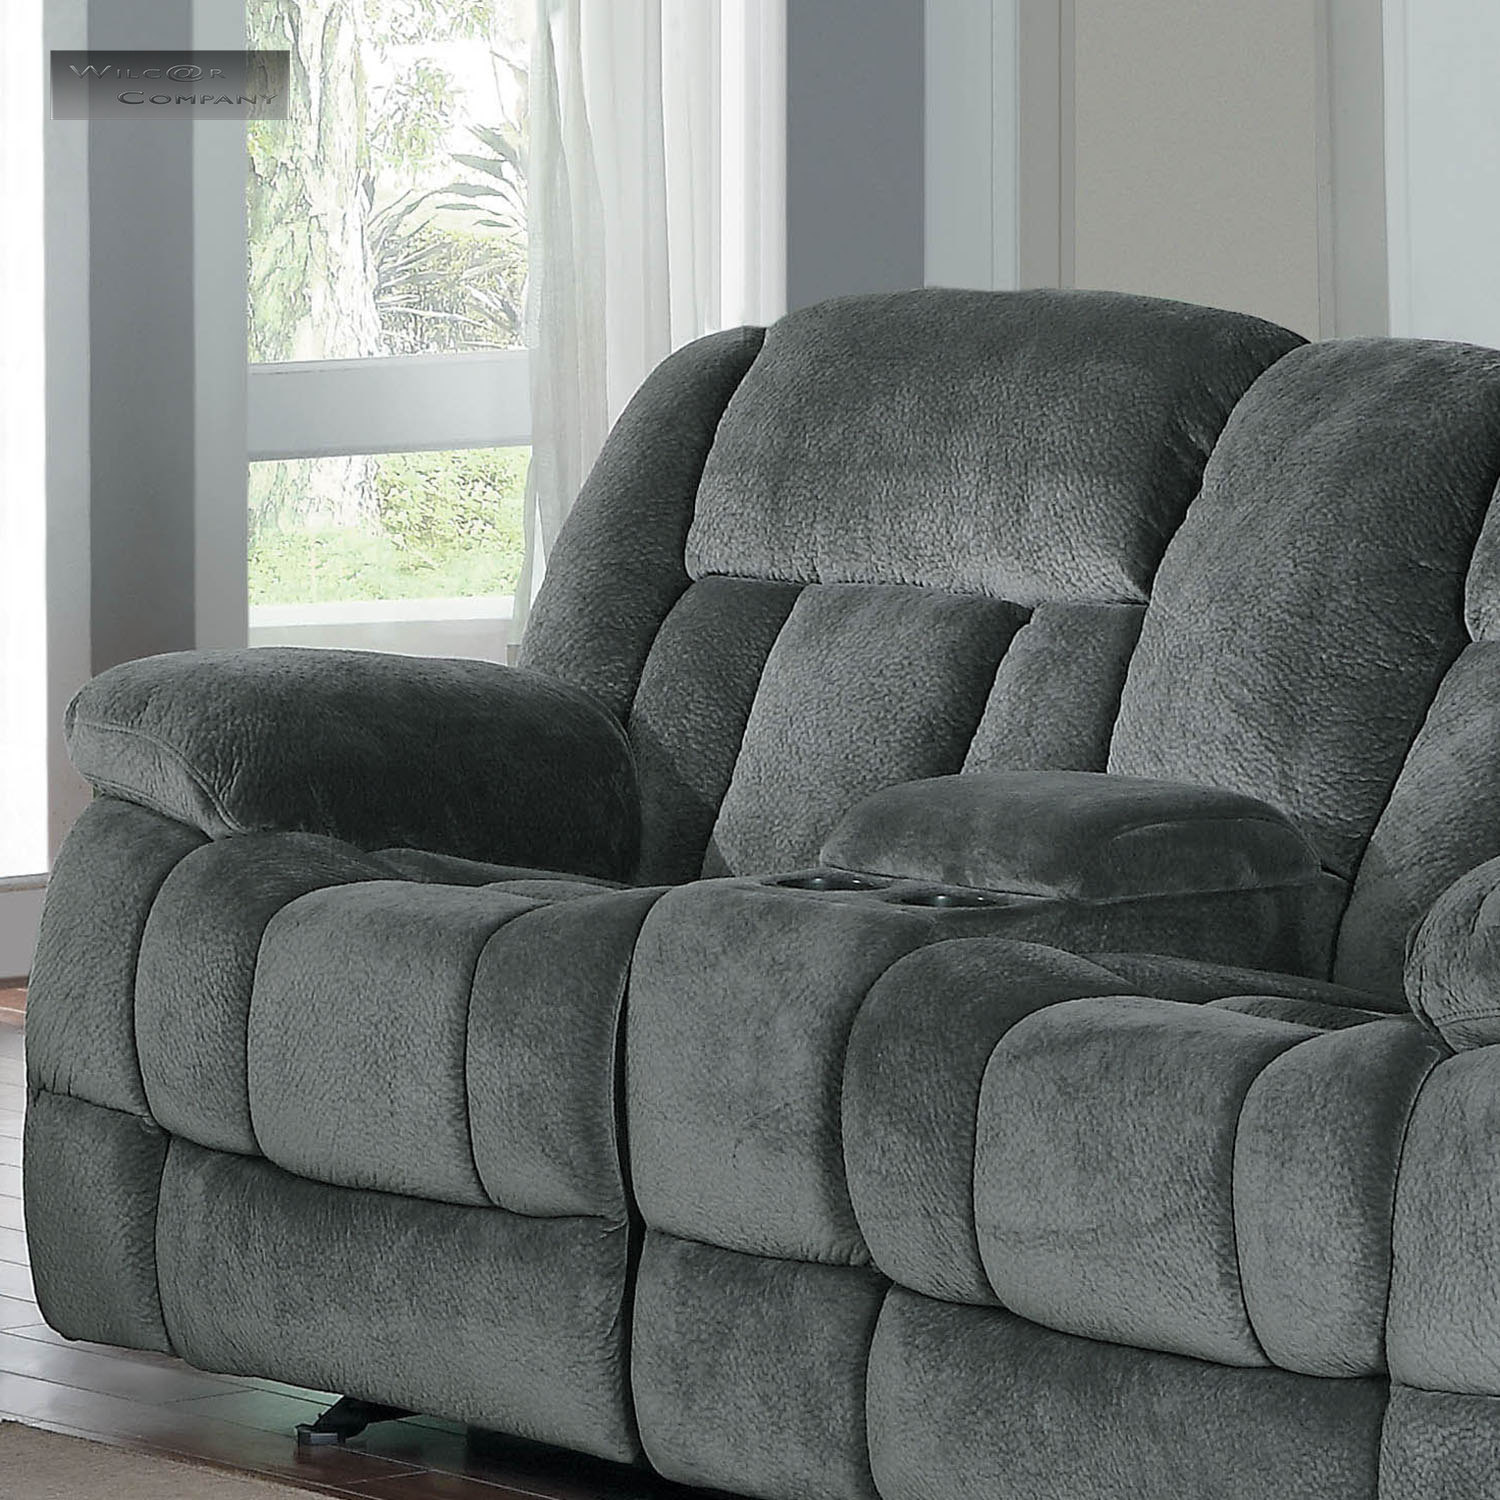 Lazy Boy Dual Reclining Sofa Lazy Boy Recliner Sofa 250 Sofa Recliner Reclining Sofa Lazy Boy